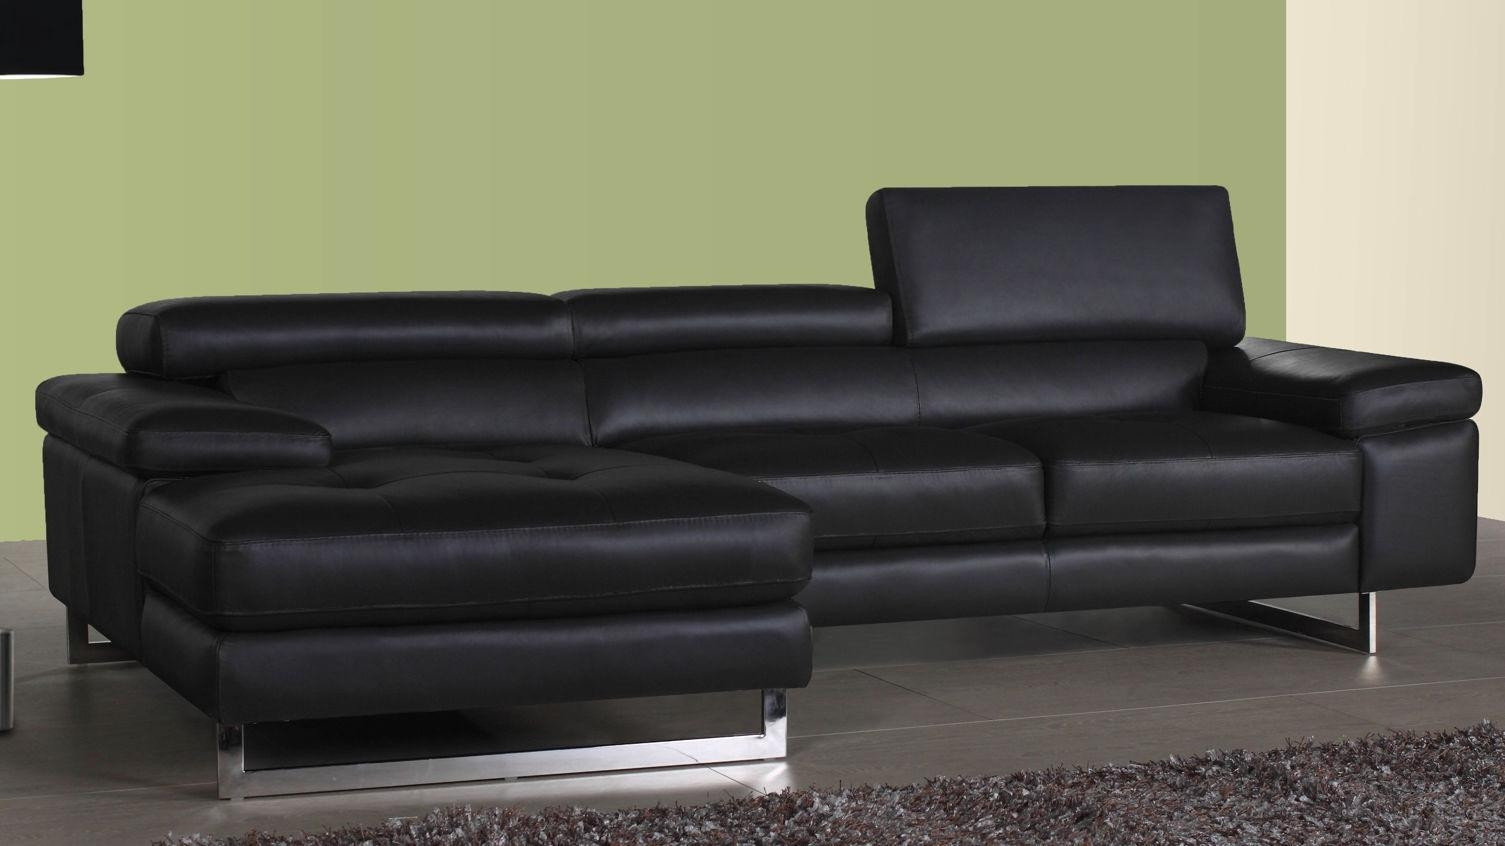 black sofa cheap plush berlin bed review 22 43 choices of large leather corner sofas ideas